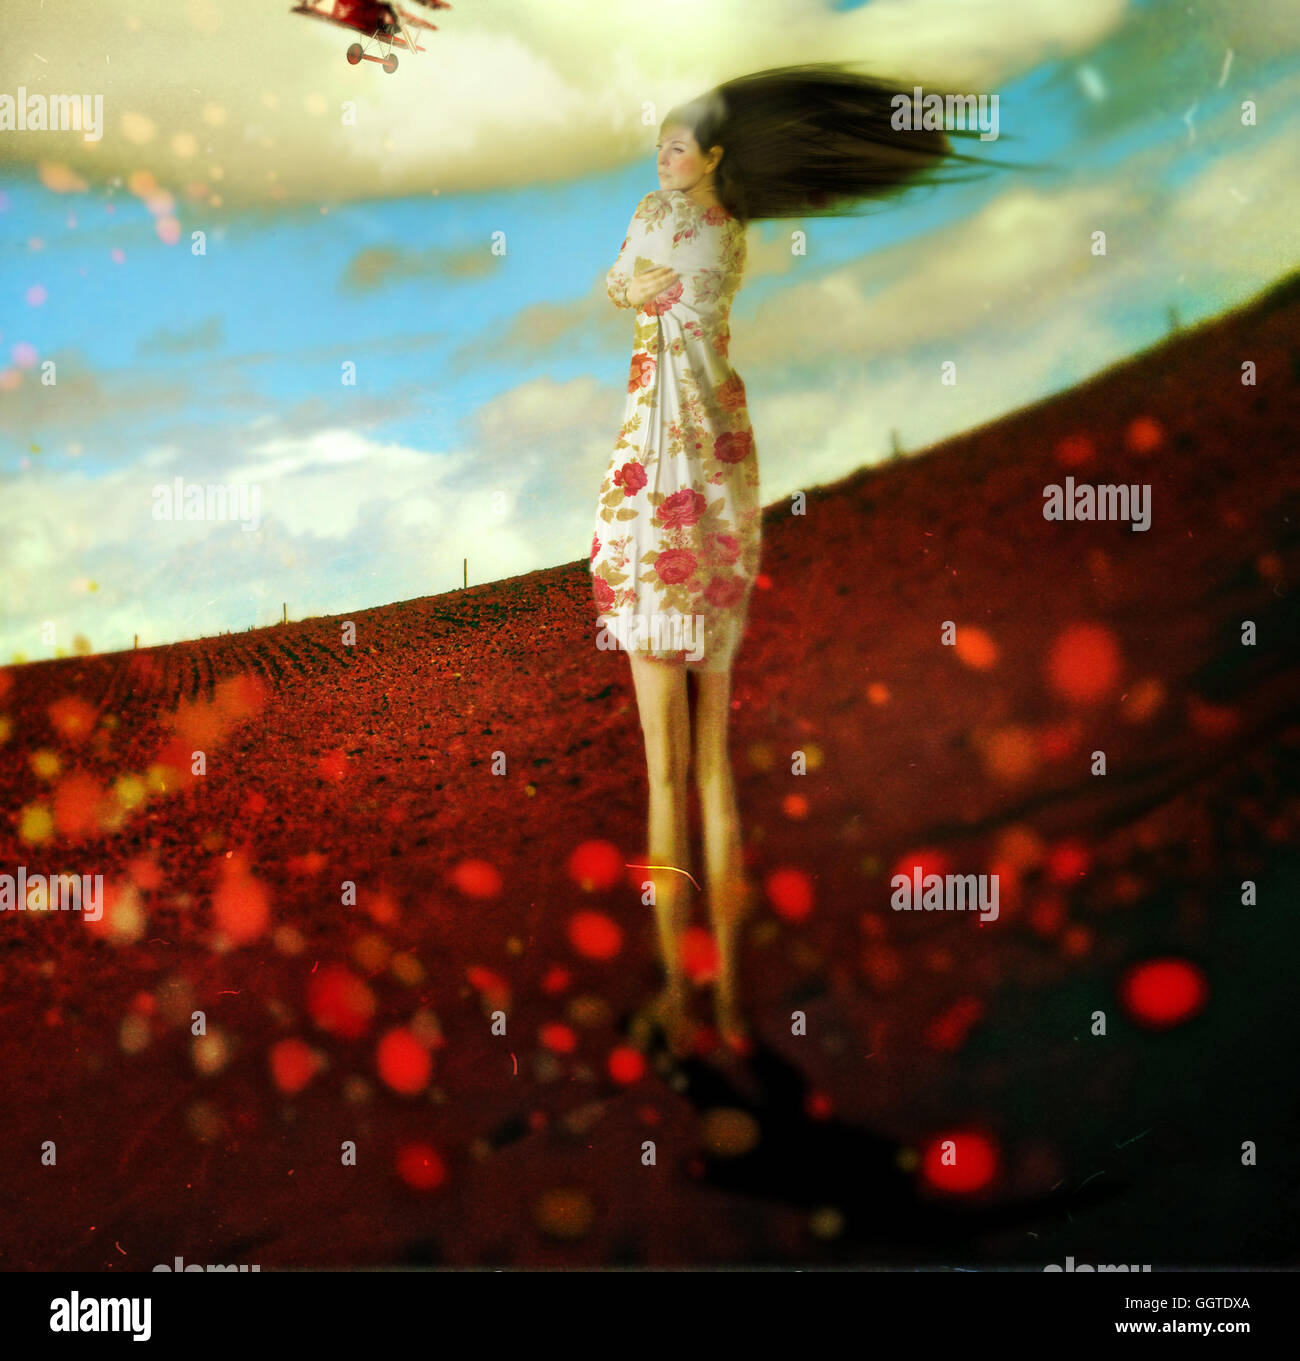 young woman standing in poppy field holding herself looking in distance - Stock Image